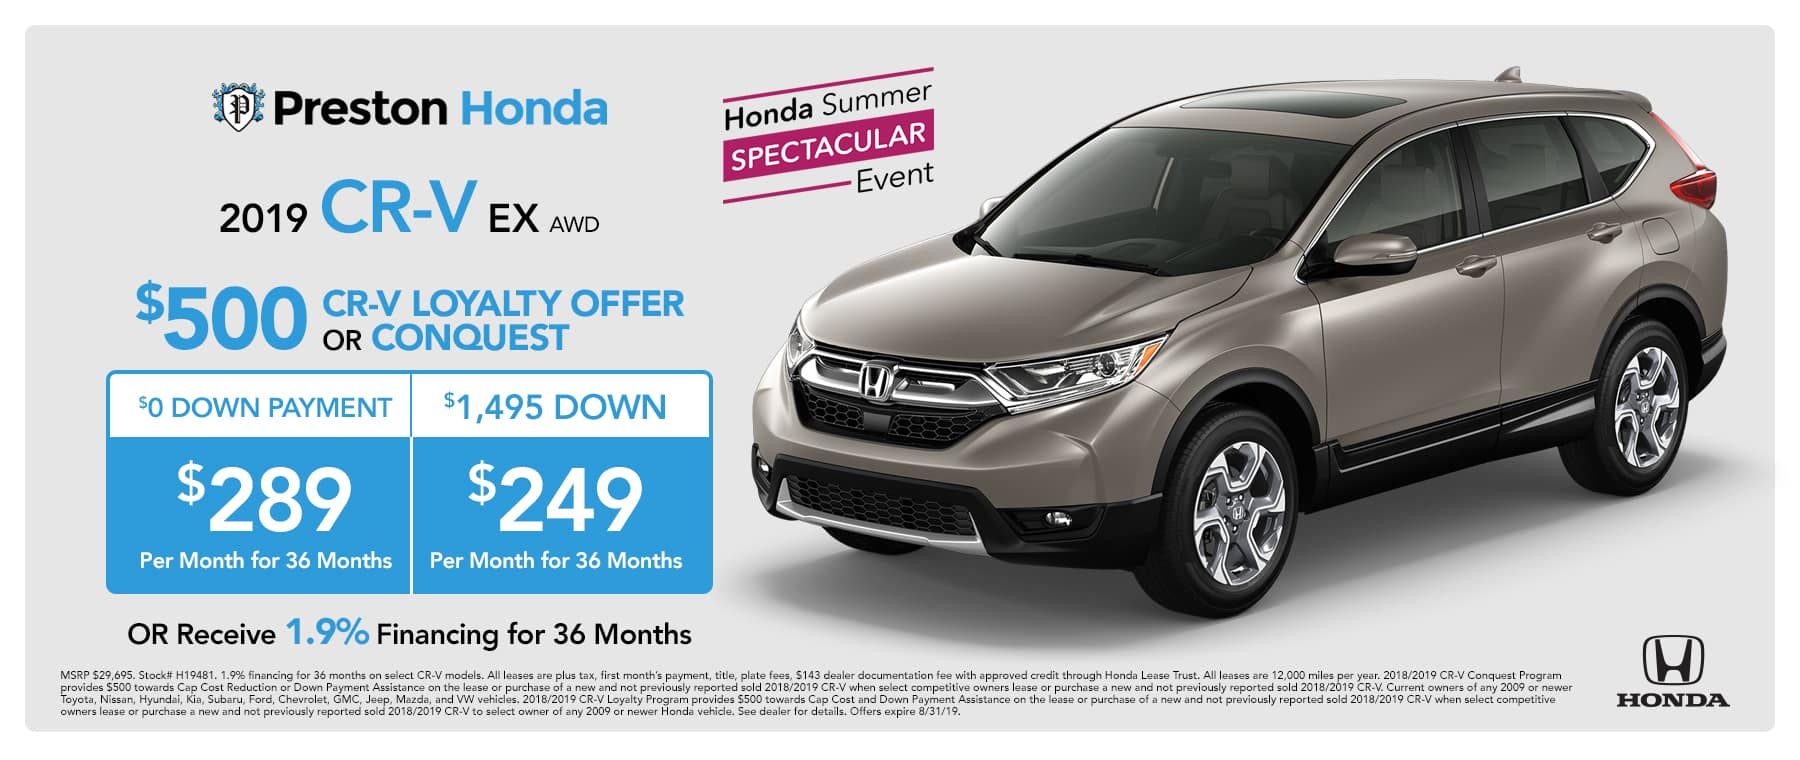 August special on the 2019 CR-V